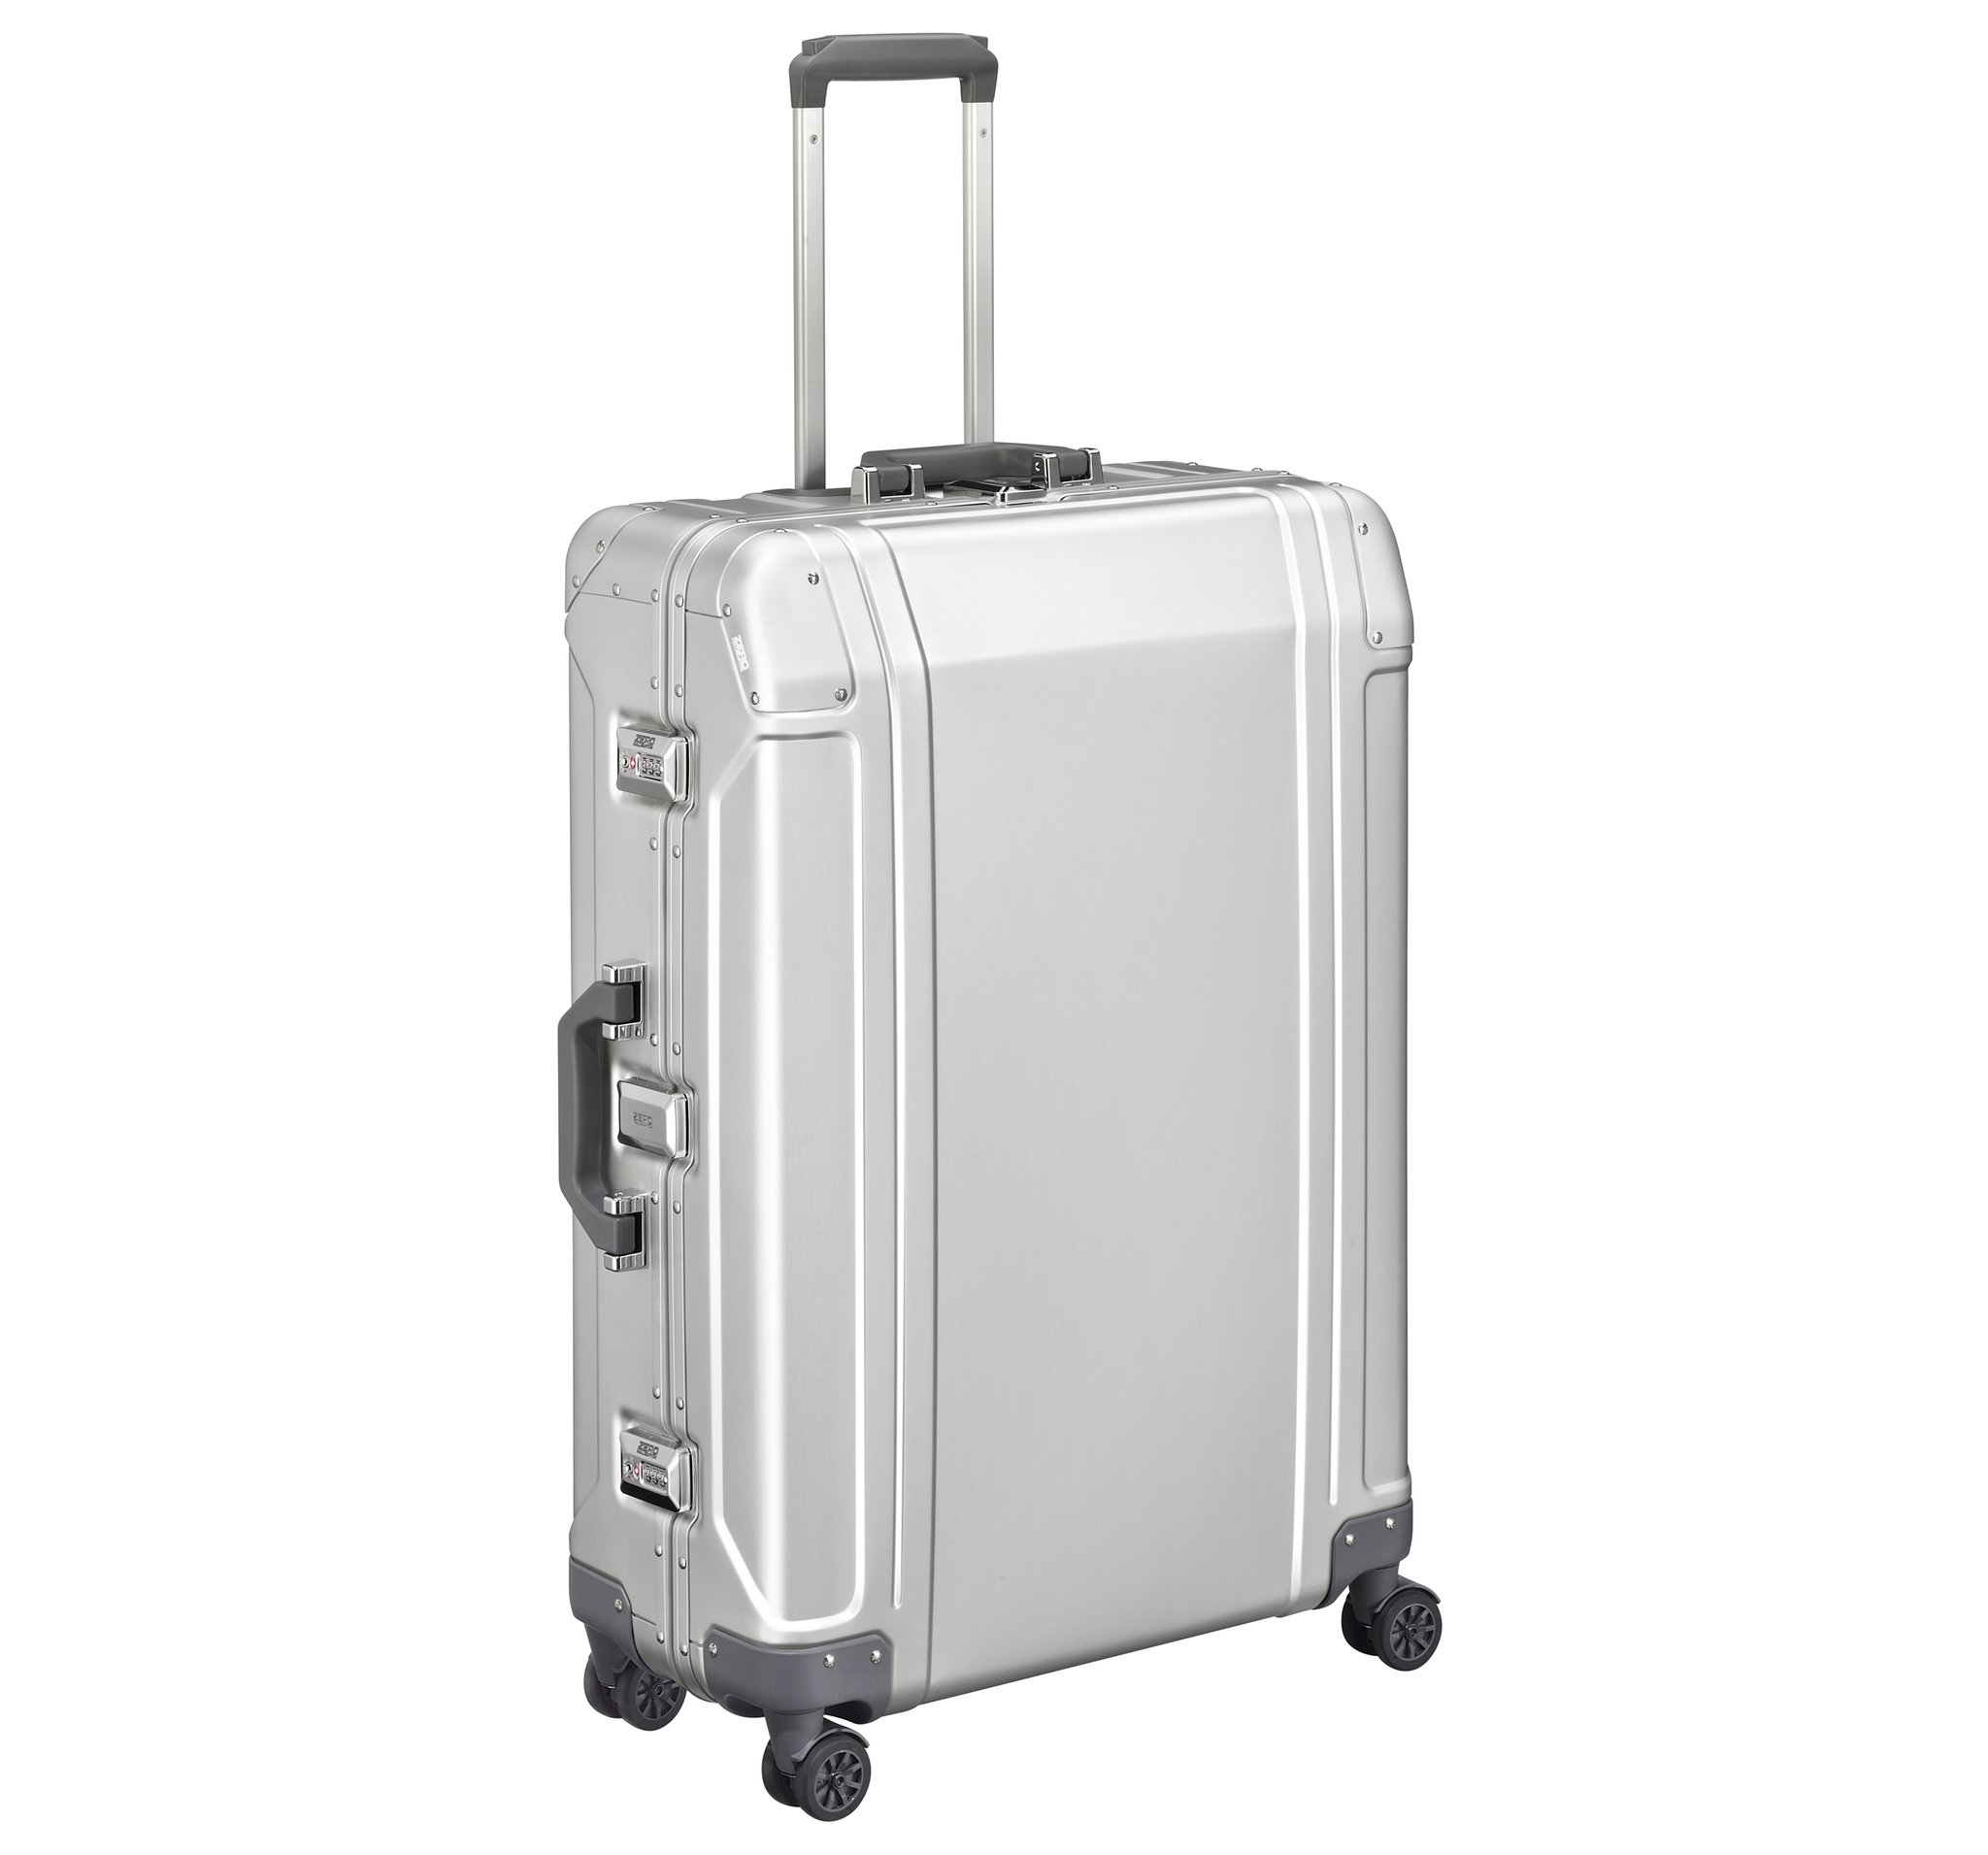 "Geo Aluminum 3.0 - 28"" 4-Wheel Spinner Travel Case by Zero Halliburton (Color: Silver)"